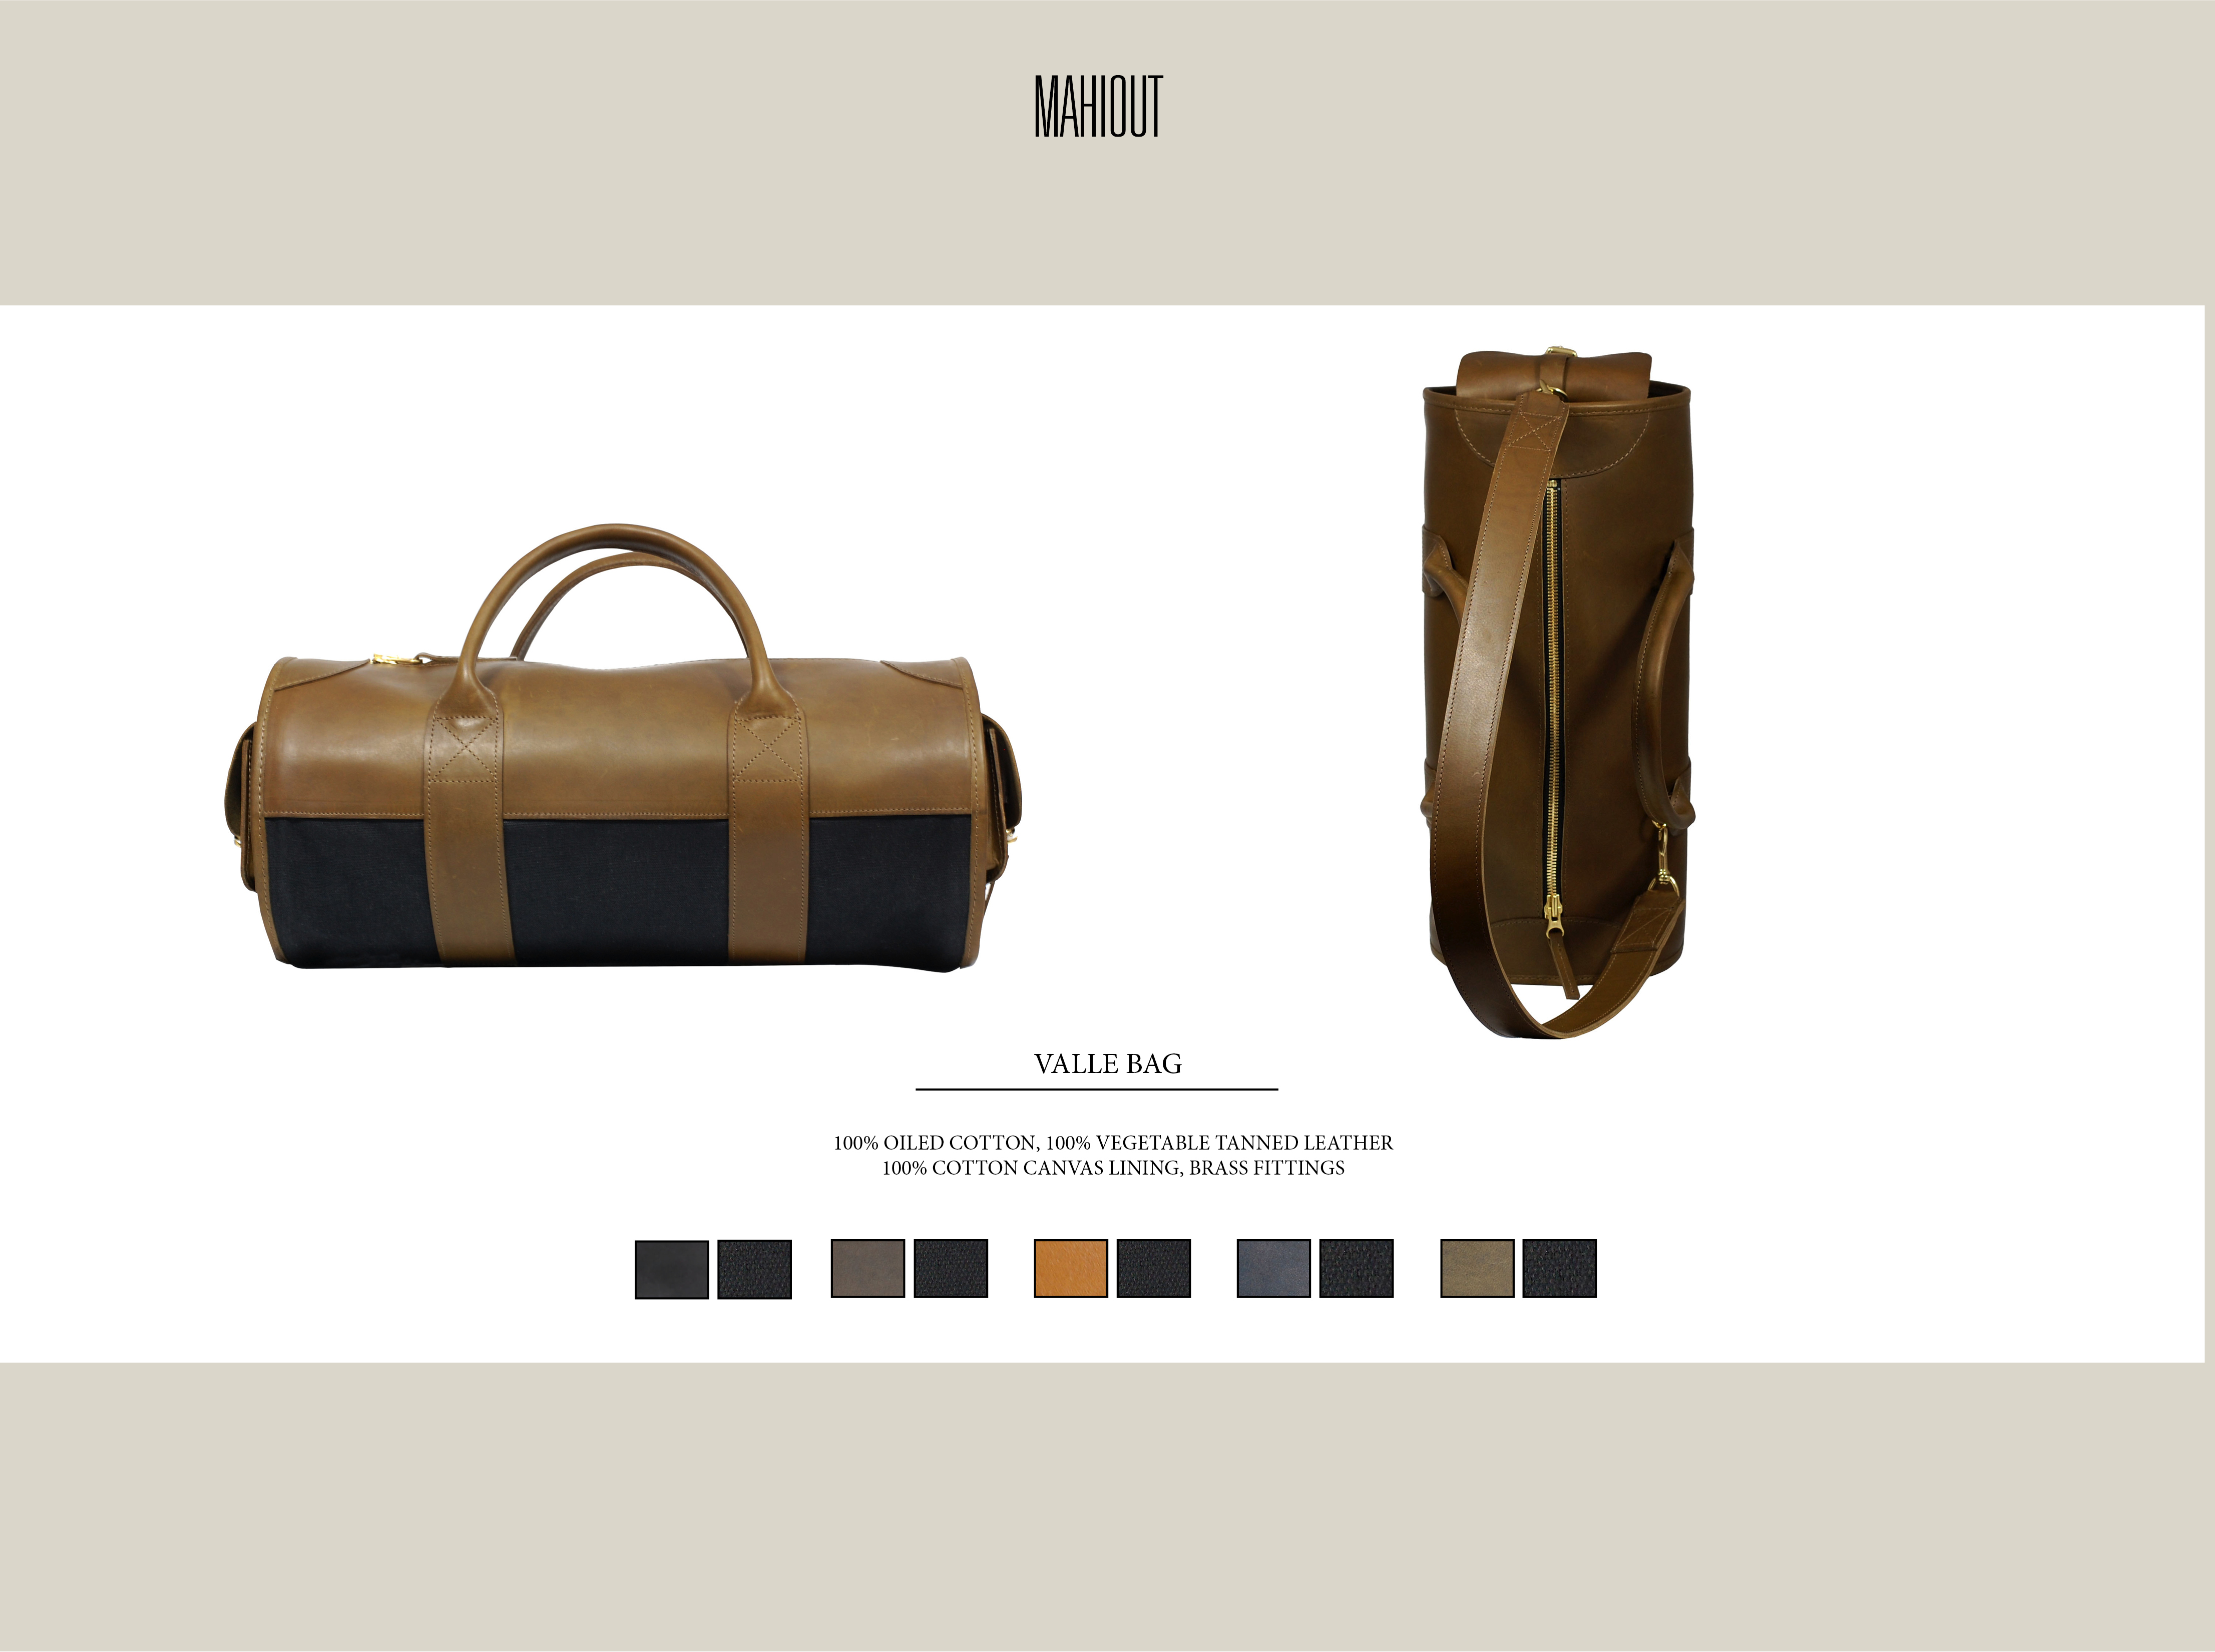 mahiout valle bag in leather and canvas